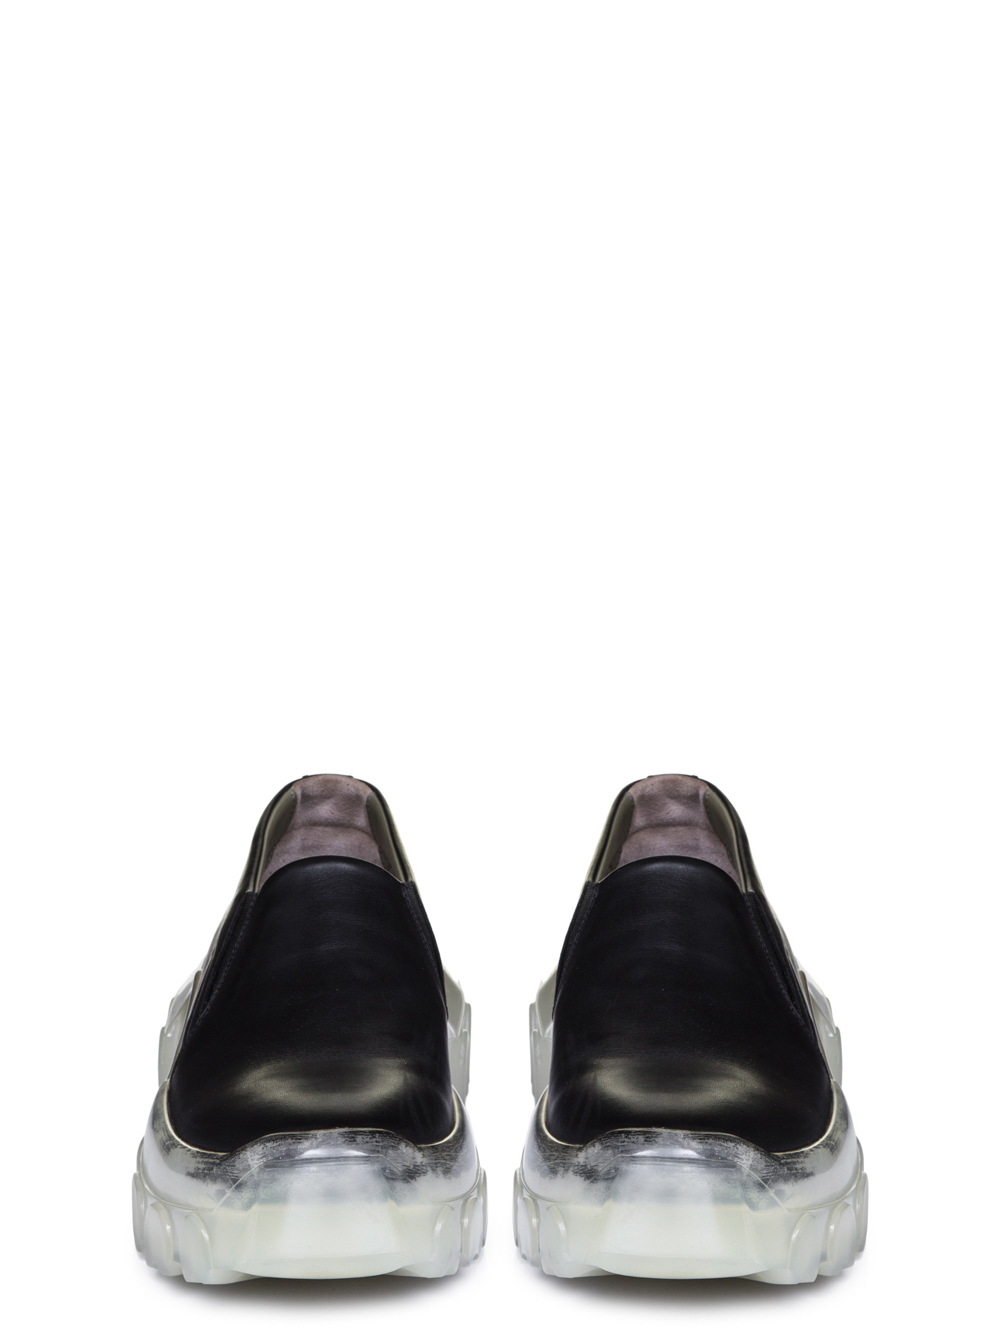 """RICK OWENS SS19 BABEL TRACTOR BOAT SNEAKERS IN BLACK CALF LEATHER """"""""CLEAR"""""""" TRANSPARENT TRACTOR SOLES"""